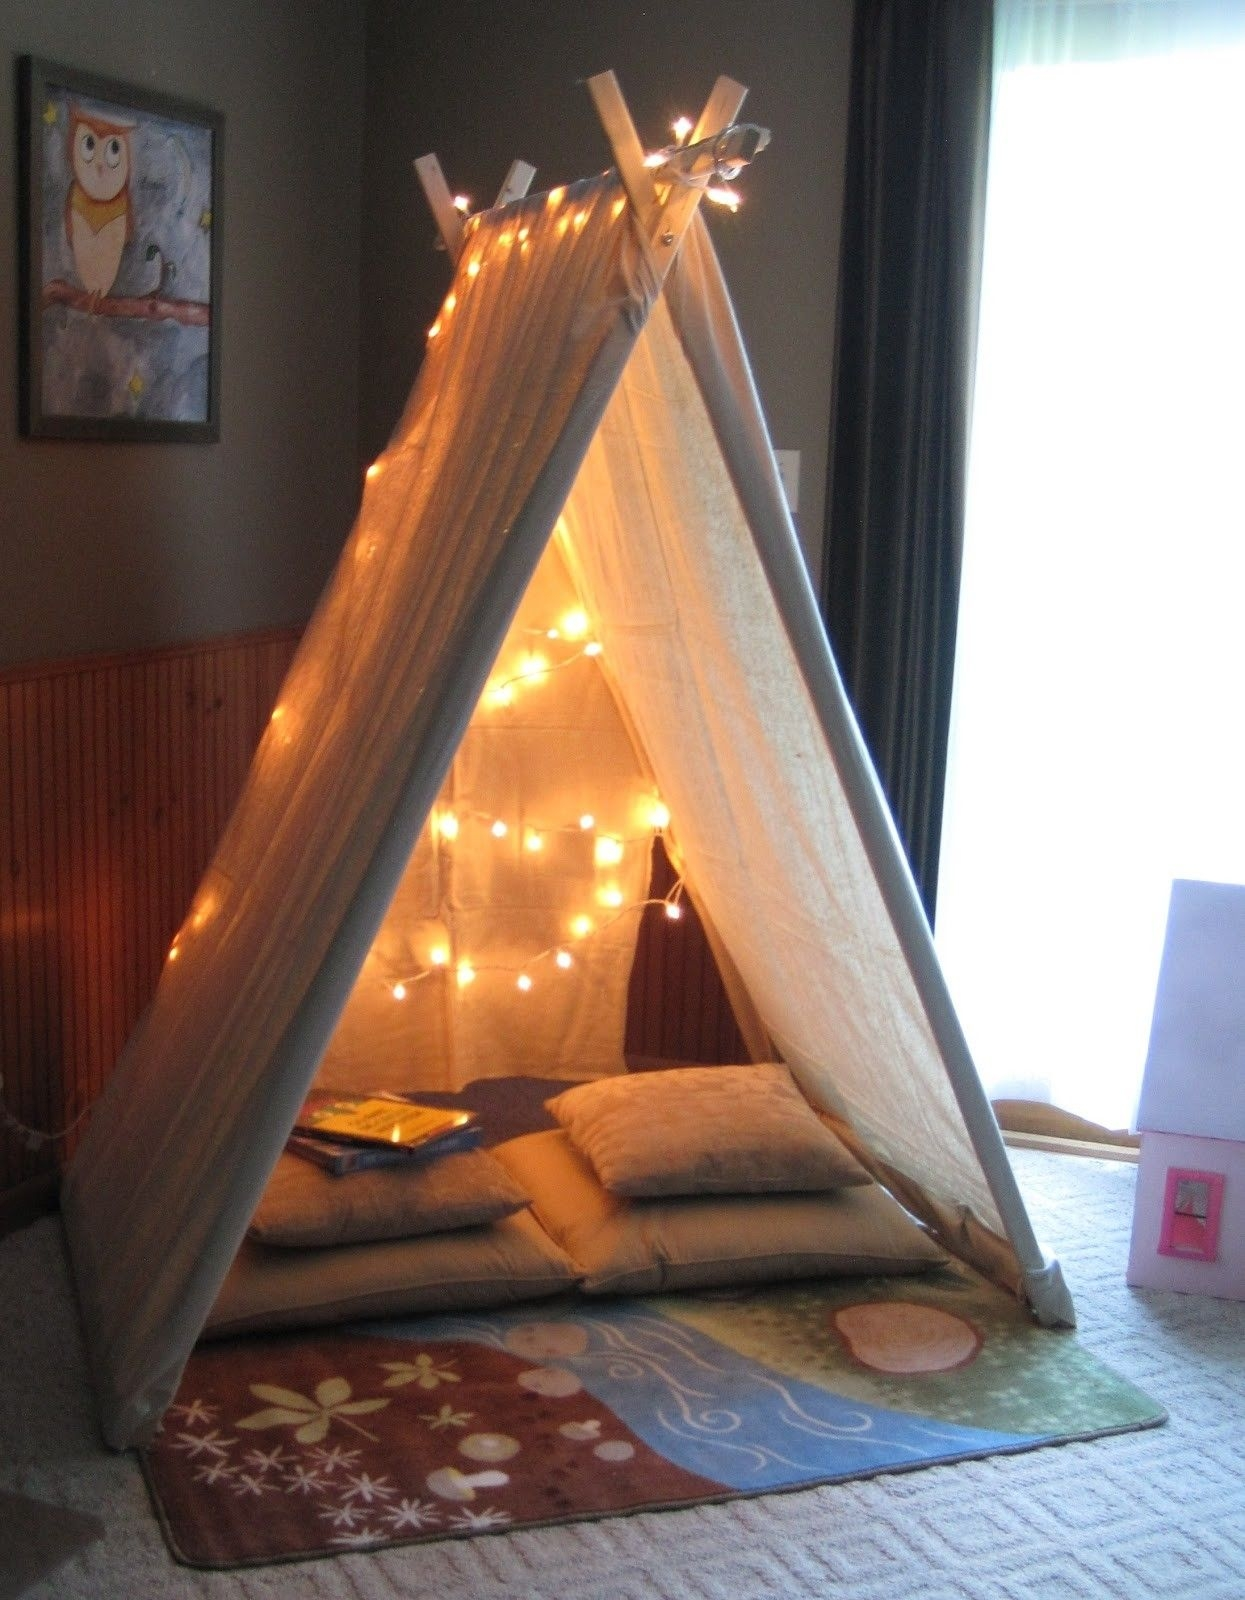 Pup tents for kids & Tents For Kids Rooms - Ideas on Foter